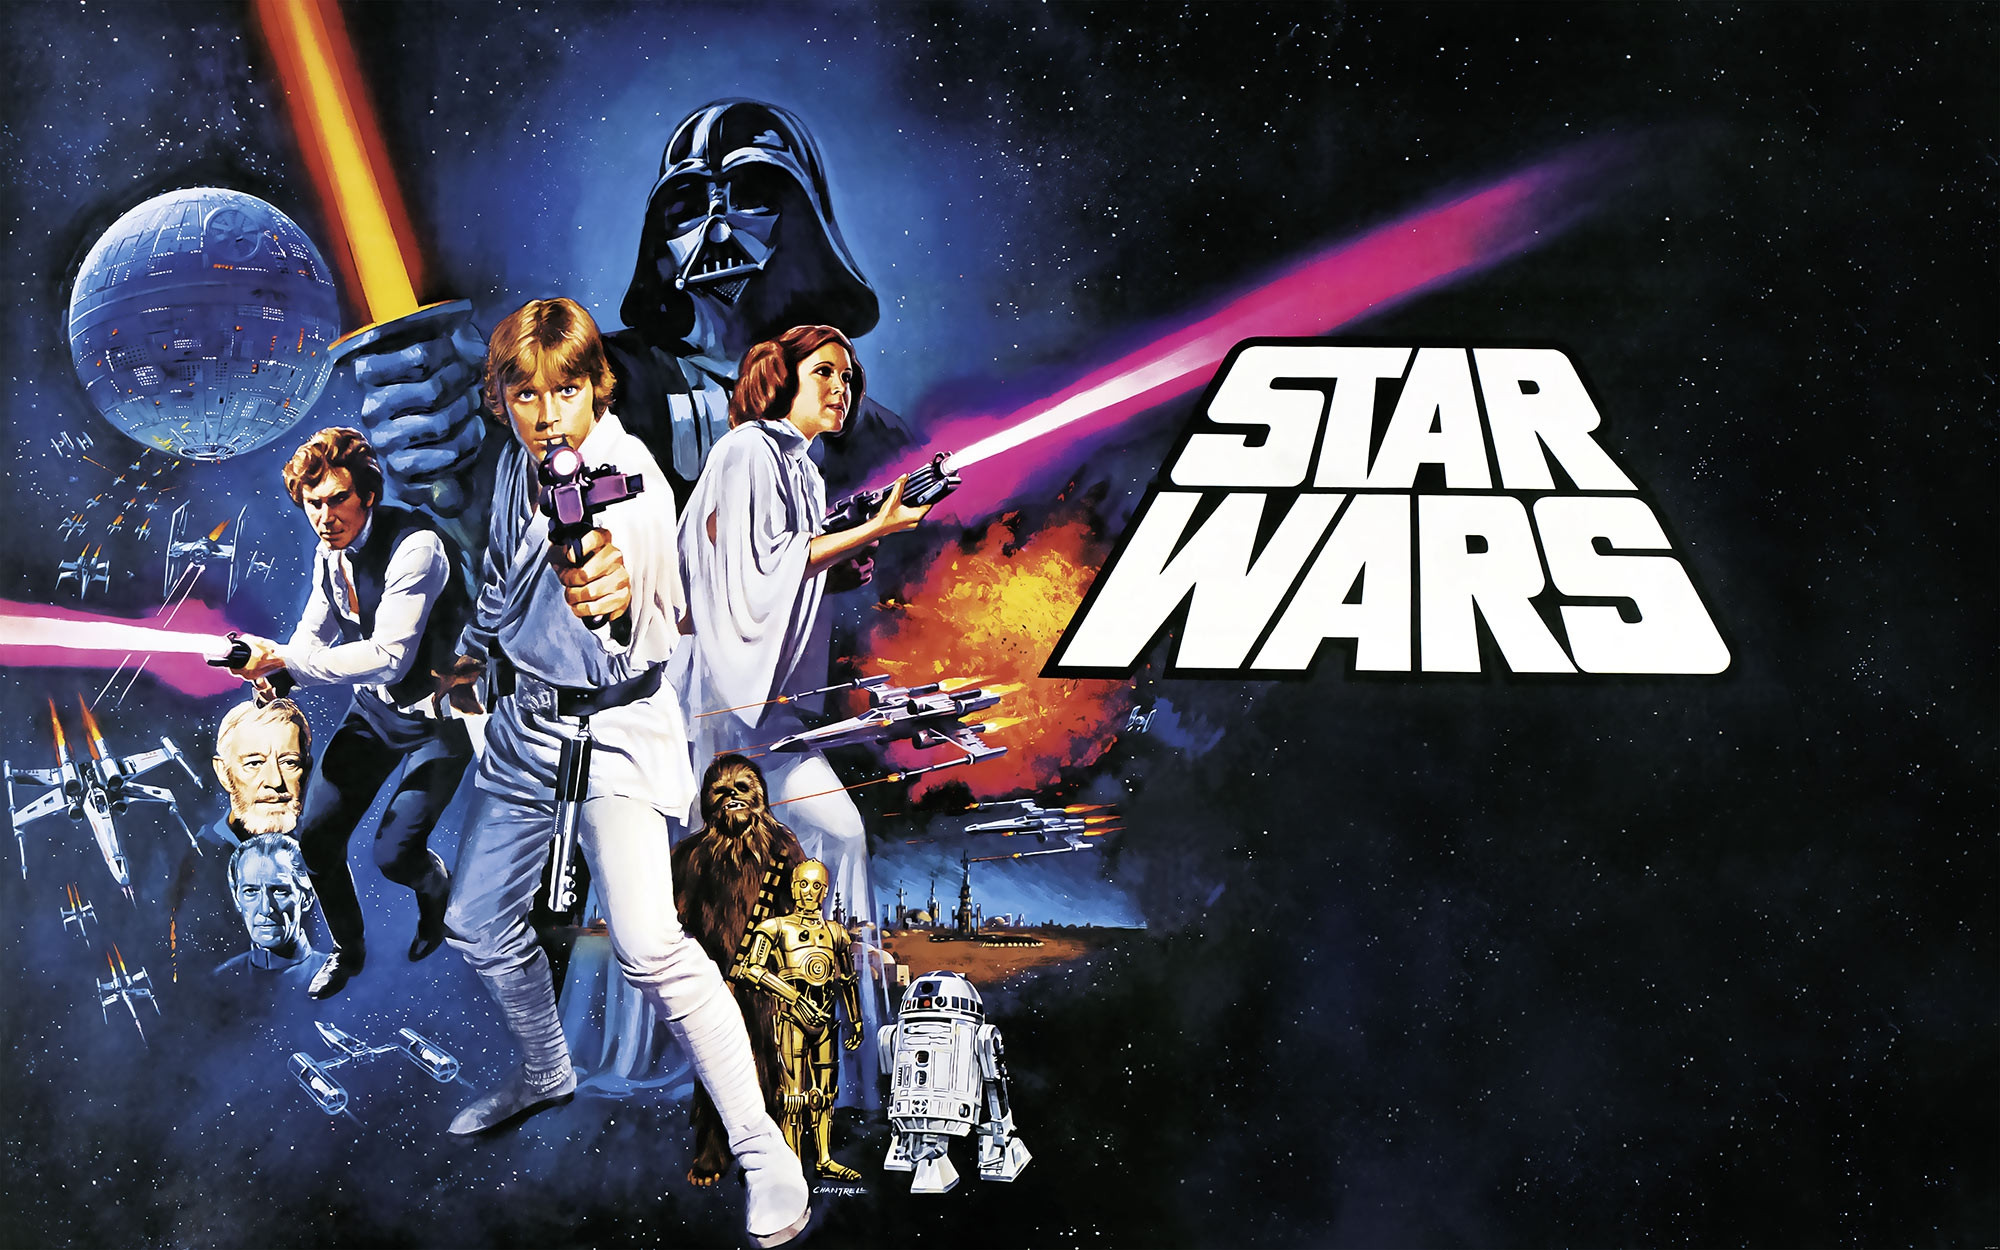 Non Woven Photomural Star Wars Poster Classic 1 026 Dvd4 From Komar Star Wars